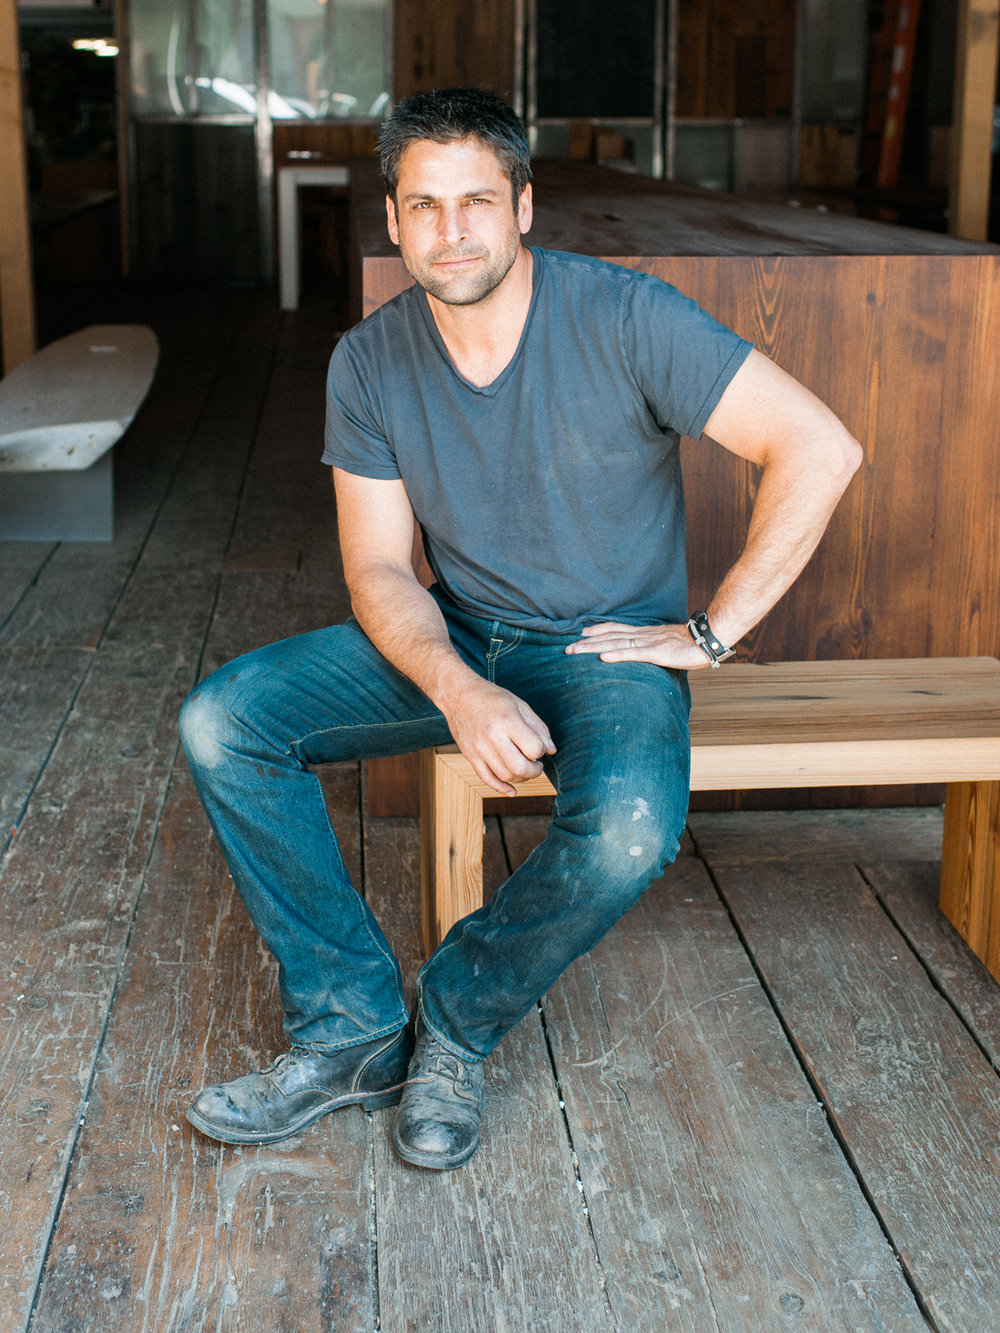 Mark Jupiter Designs DUMBO Brooklyn, NY custom reclaimed wood bench branding photo Lindsey Victoria Photography